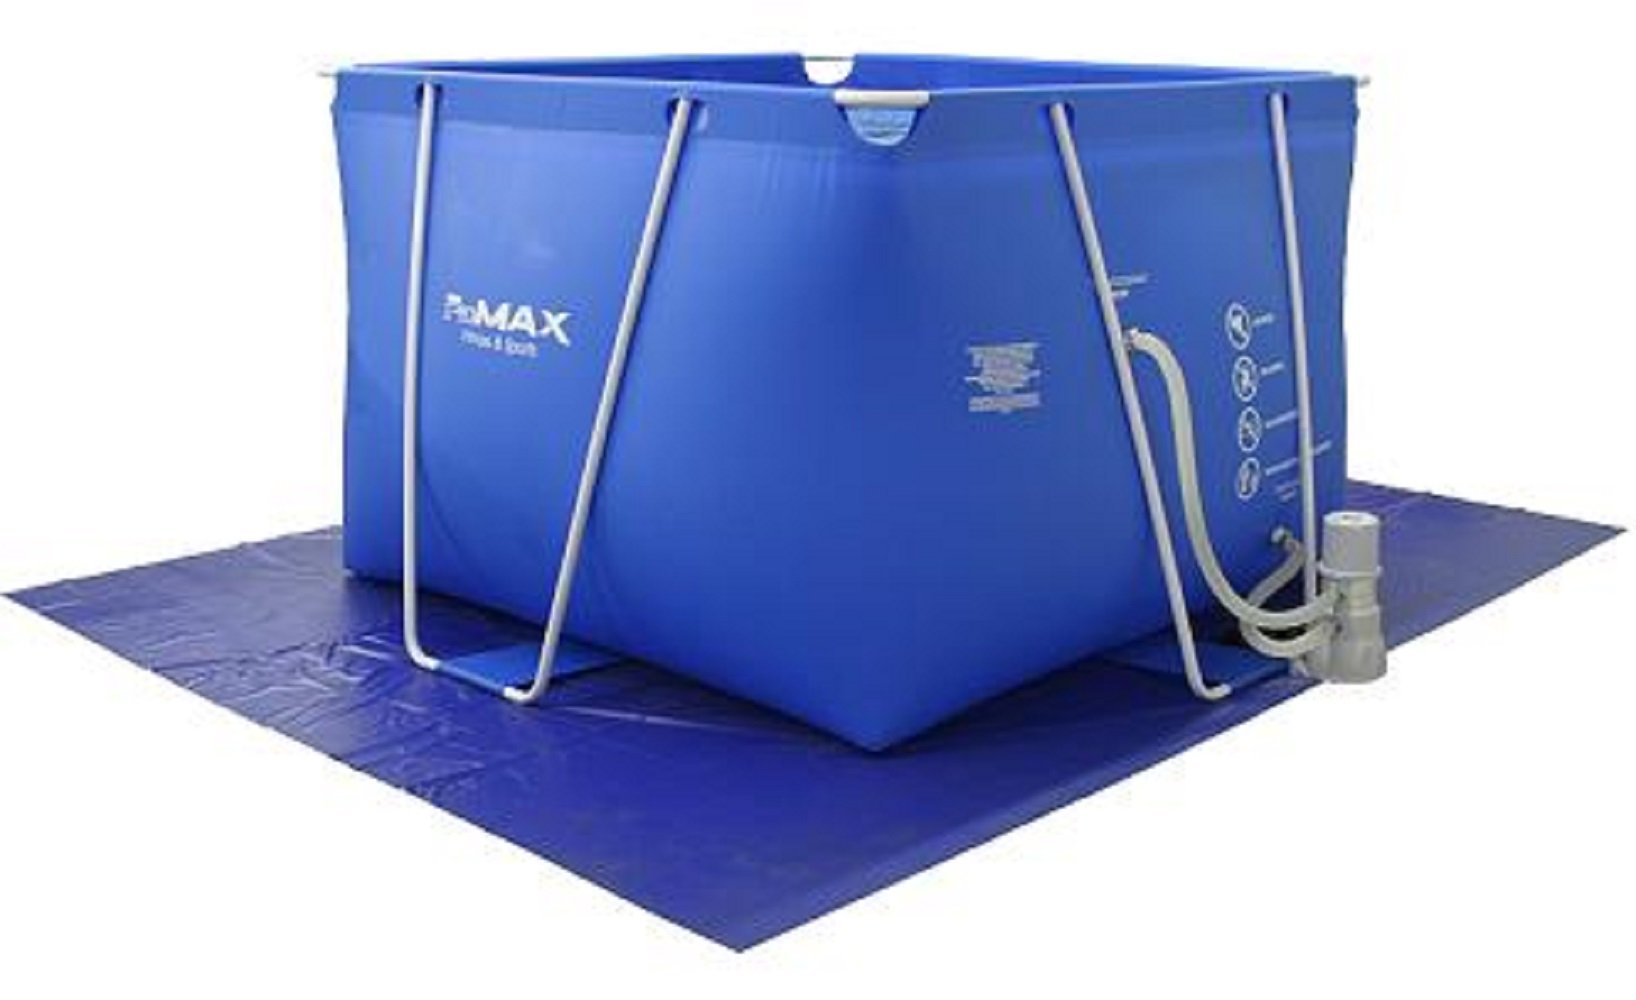 FitMAX Therapy Pool (Ladder sold separately)